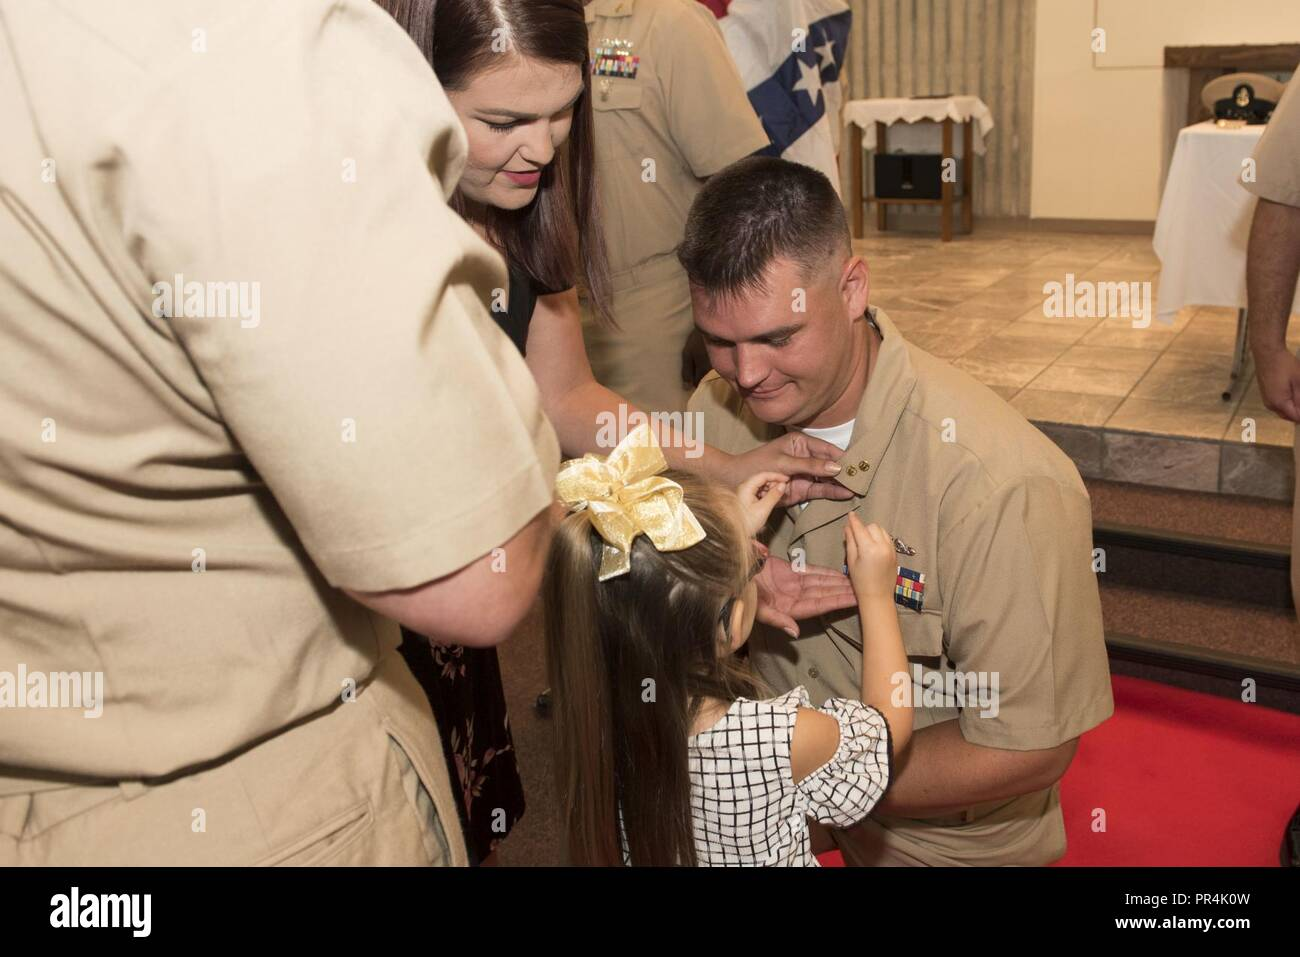 KINGS BAY, Georgia (Sept. 14, 2018) Chief Culinary Specialist (Submarines) Seth Smith is pinned with his anchors by his family during Naval Submarine Base Kings Bay's 2018 chief petty officer pinning ceremony.  The base is home to six of the Ohio-class ballistic-missile submarines that make up the most survivable leg of the nuclear missile triad. - Stock Image